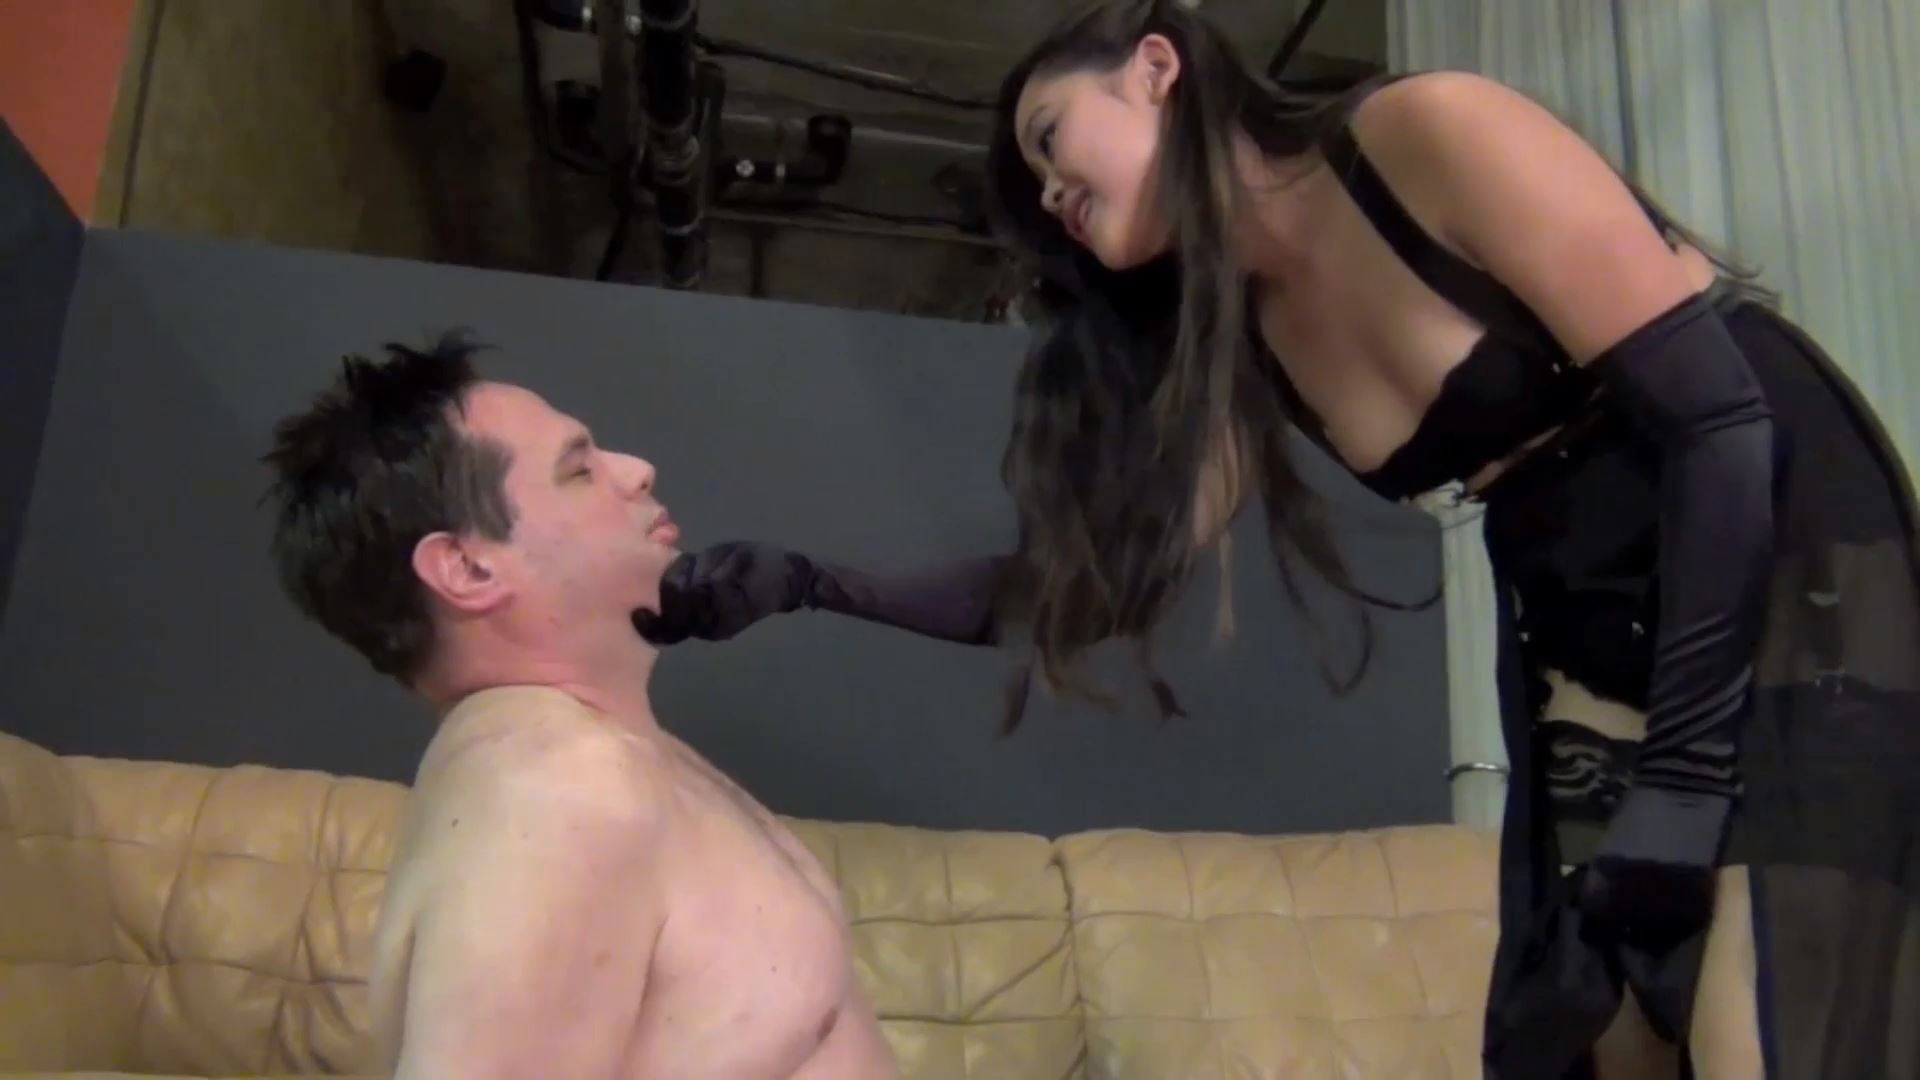 BE A GOOD VIDEO SUB OR GET BLACKMAILED - ASIAN MEAN GIRLS - FULL HD/1080p/MP4